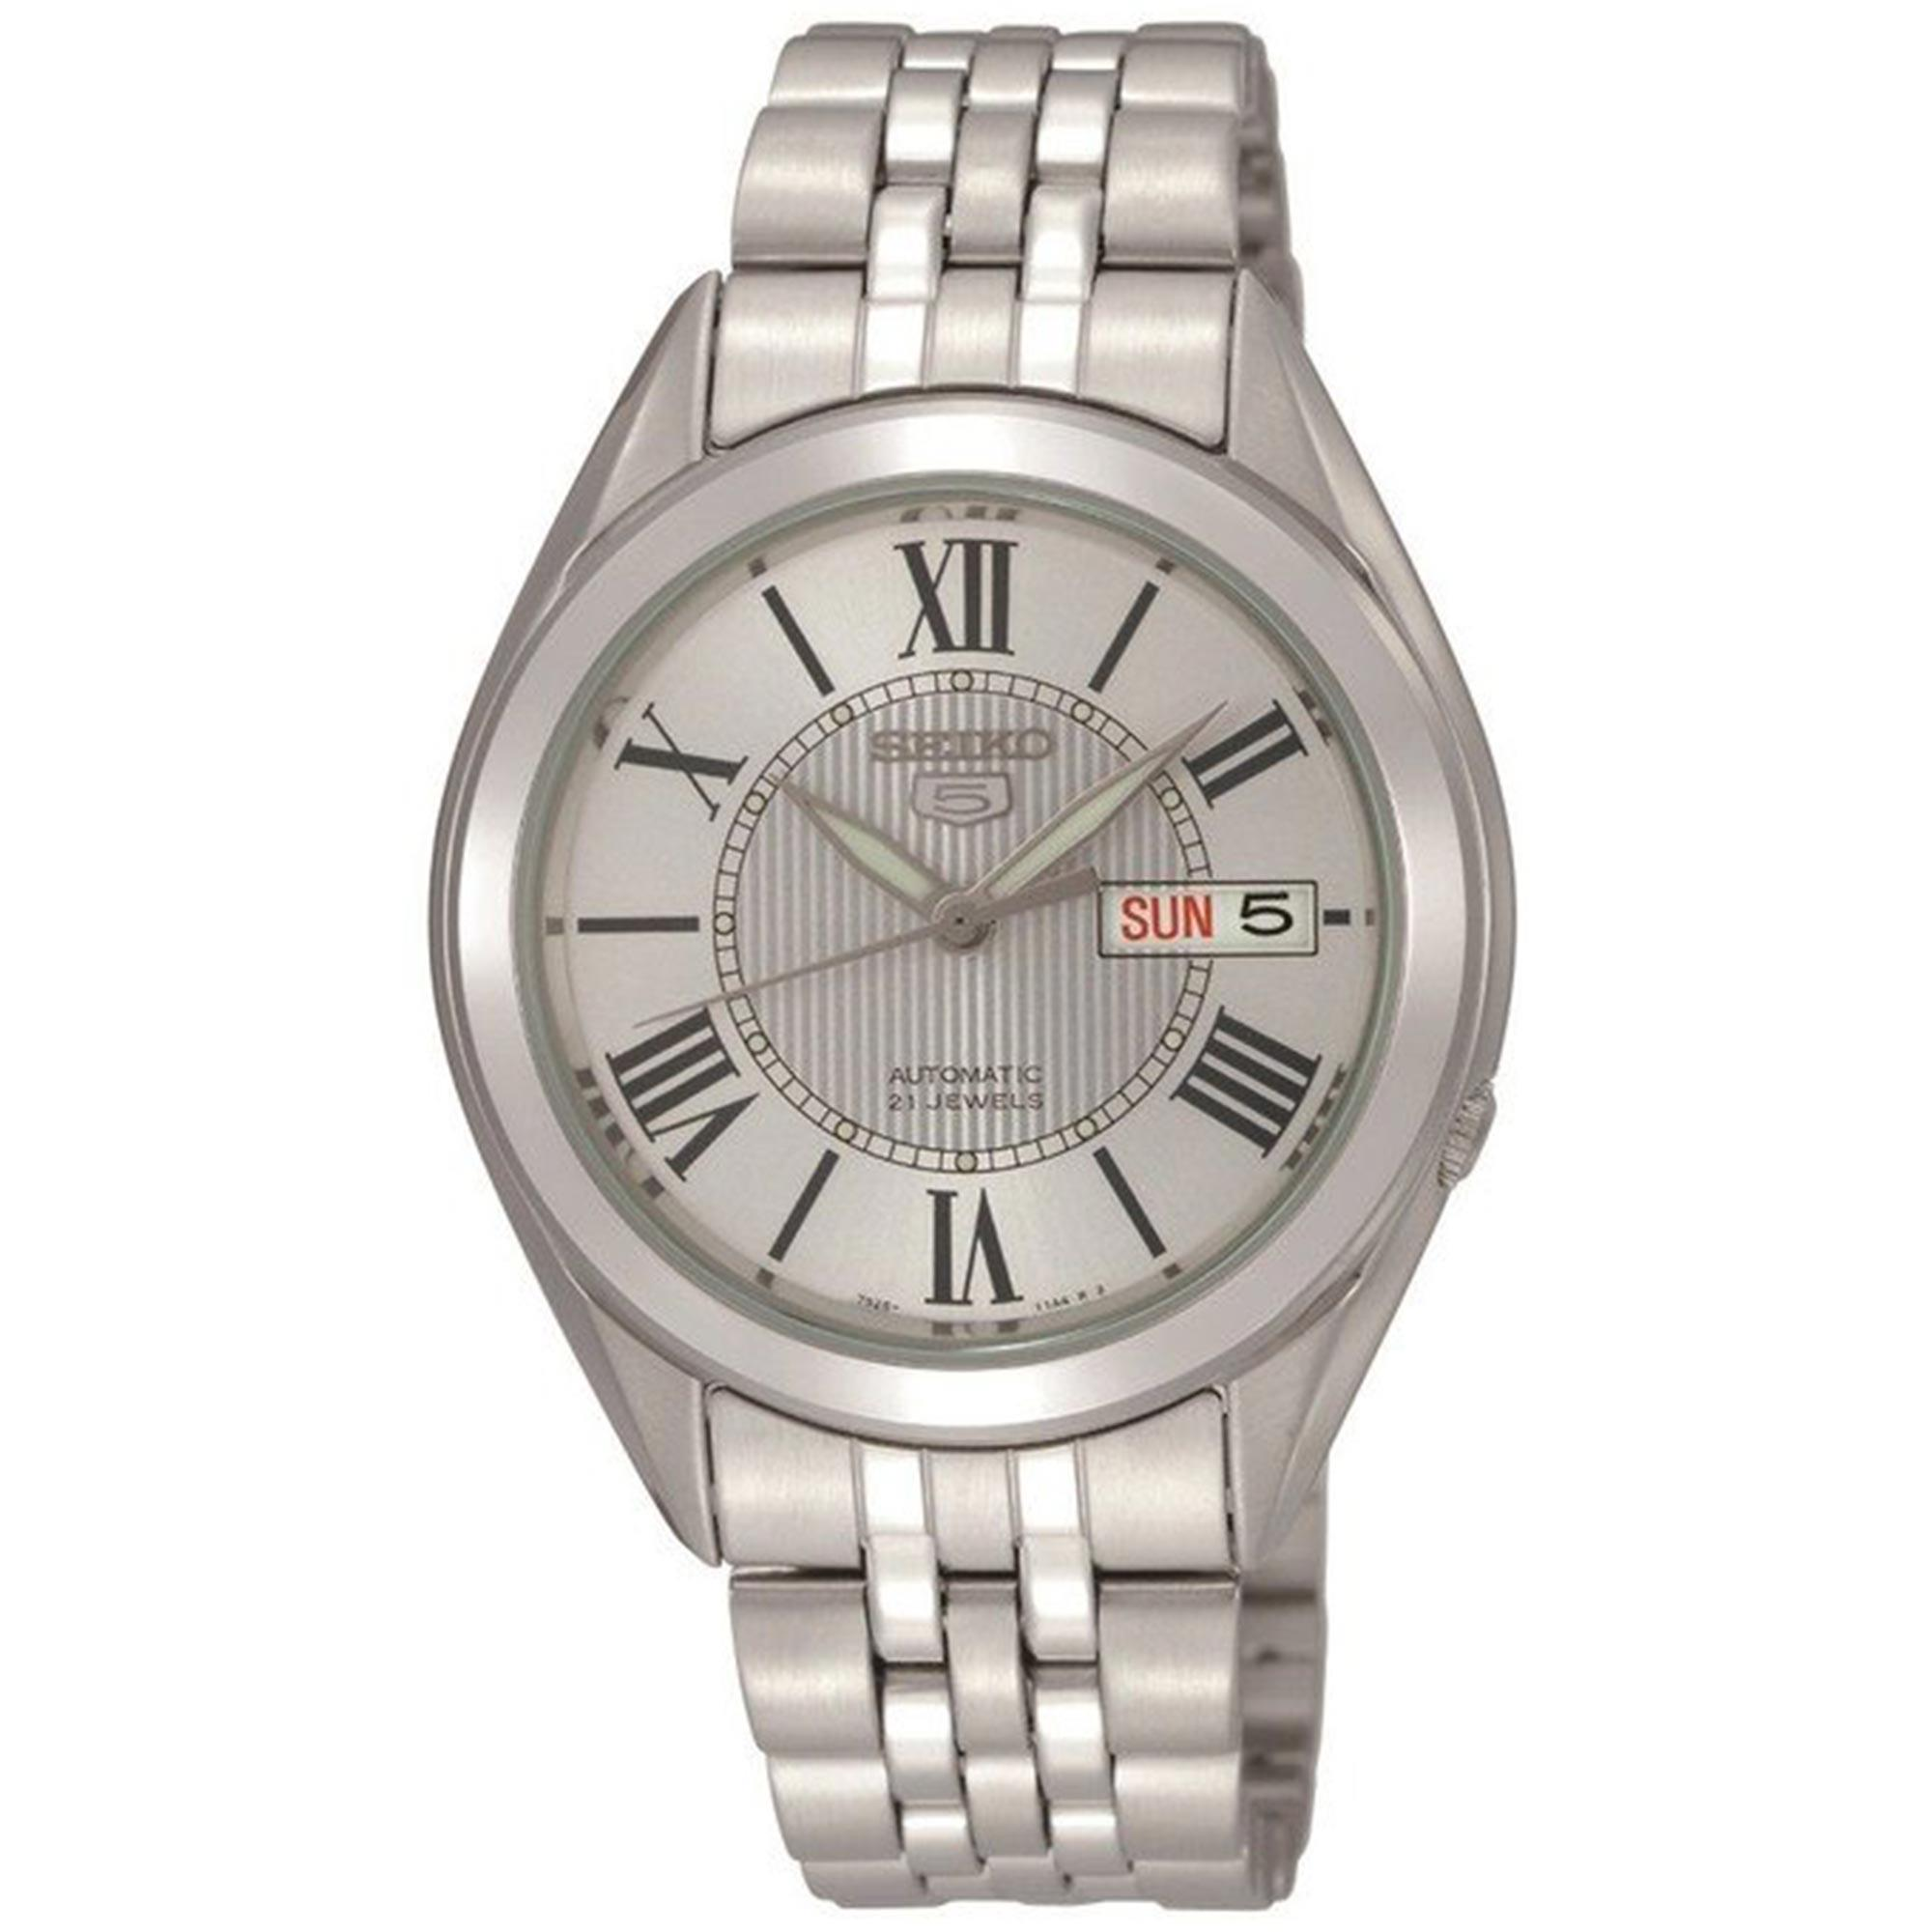 Seiko 5 Automatic White Dial Silver Stainless Steel Men's Watch SNKL29K1 RRP £149